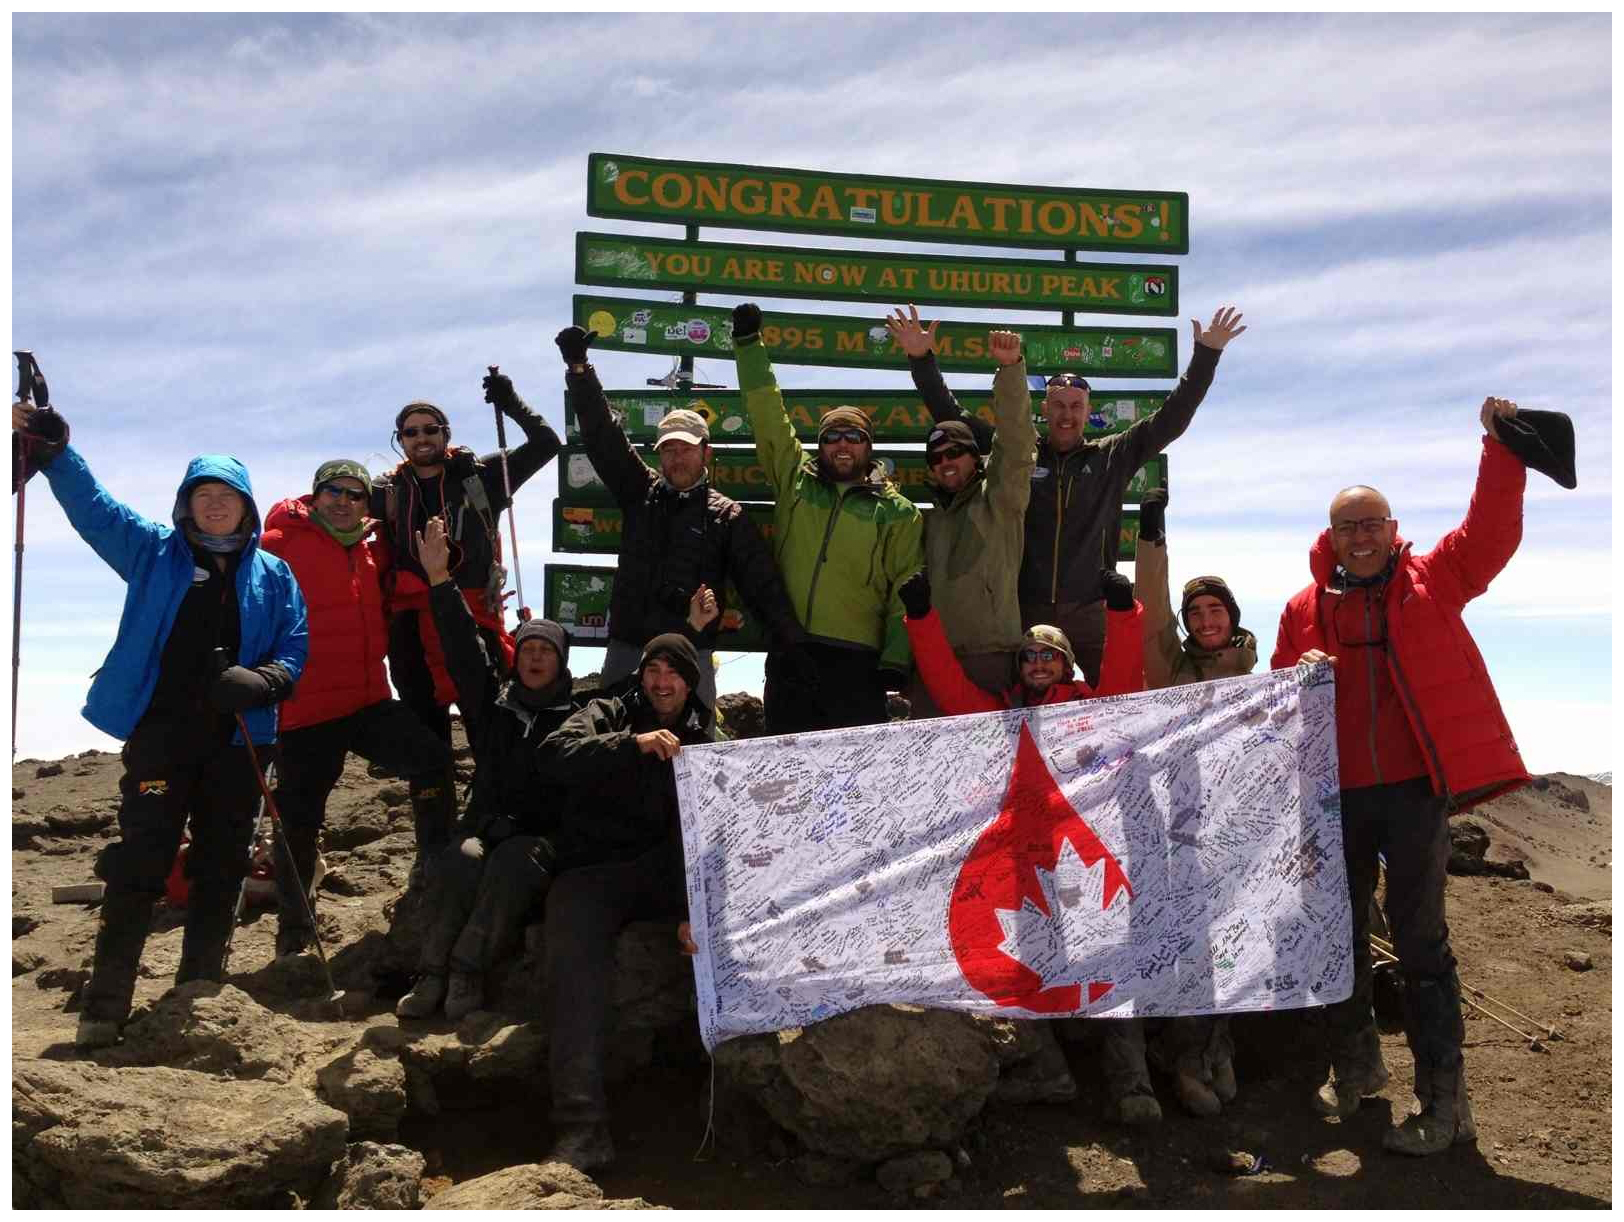 The climb team celebrates their trek at Mount Kilimanjaro